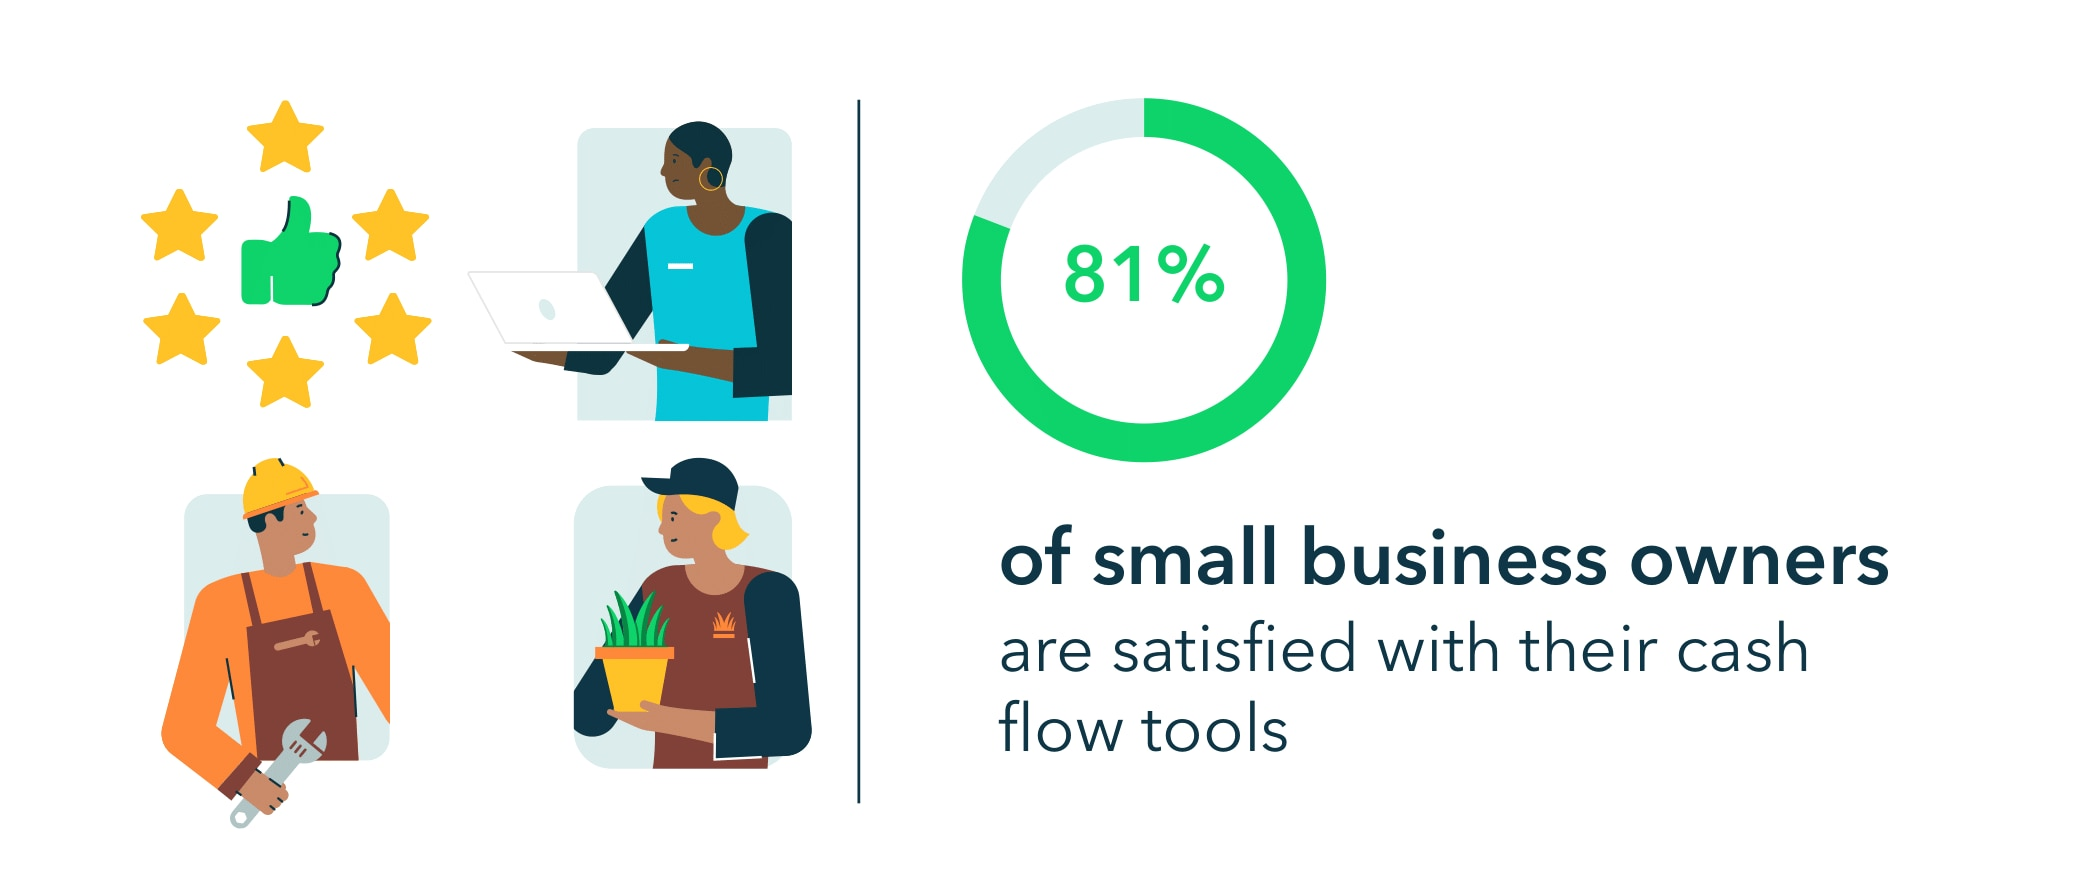 81% of small business owners are satisfied with their cash flow tools.